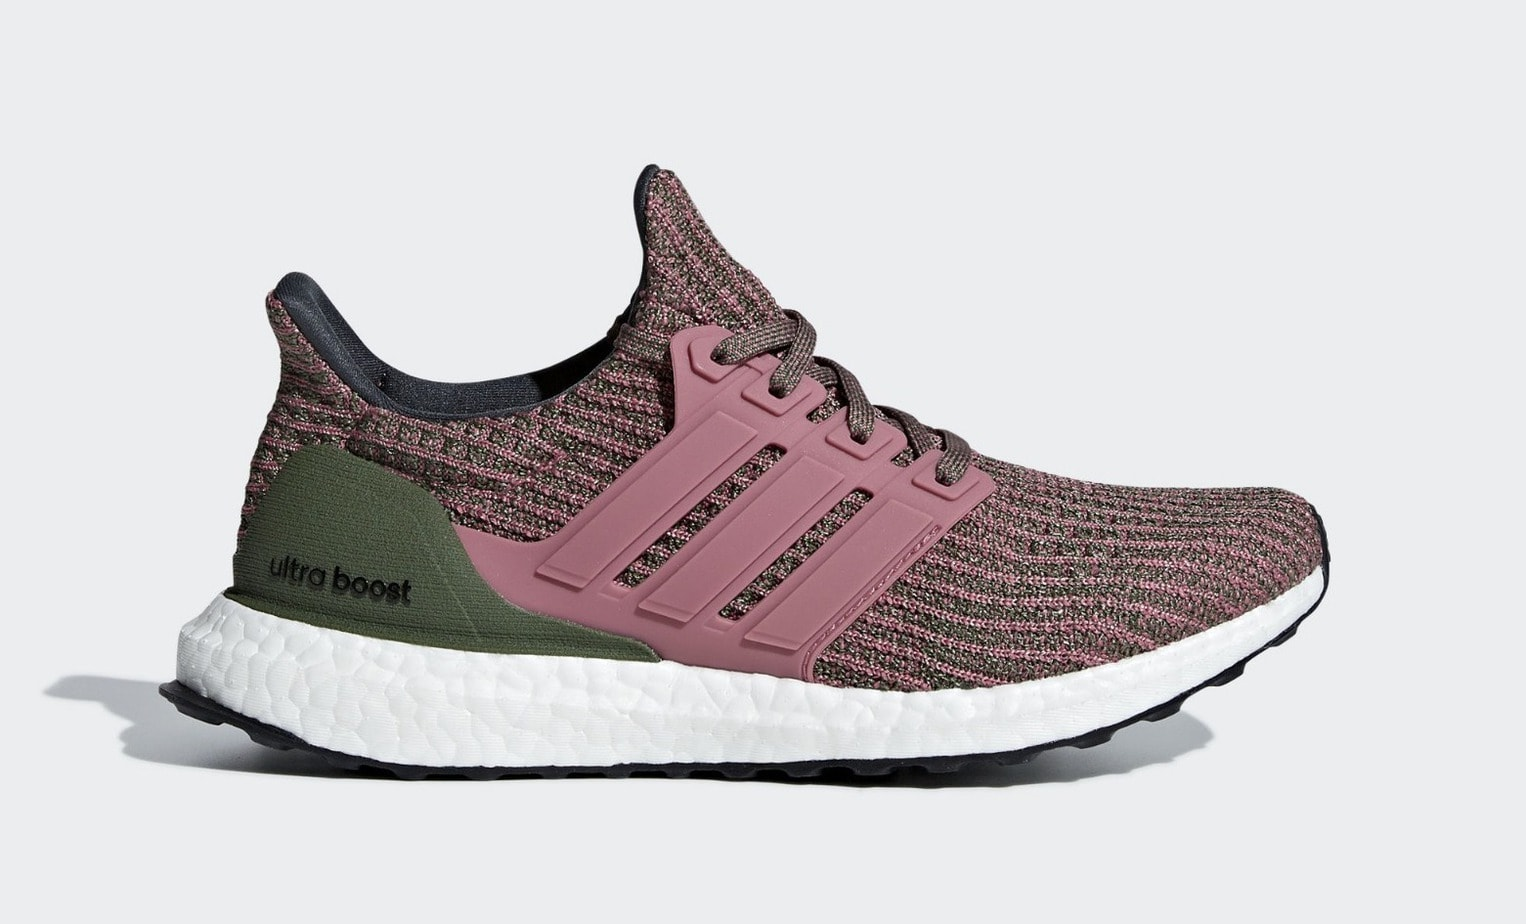 368592e681891 ... inexpensive adidas ultra boost 4.0. release date september 15th 2018.  price 180. color